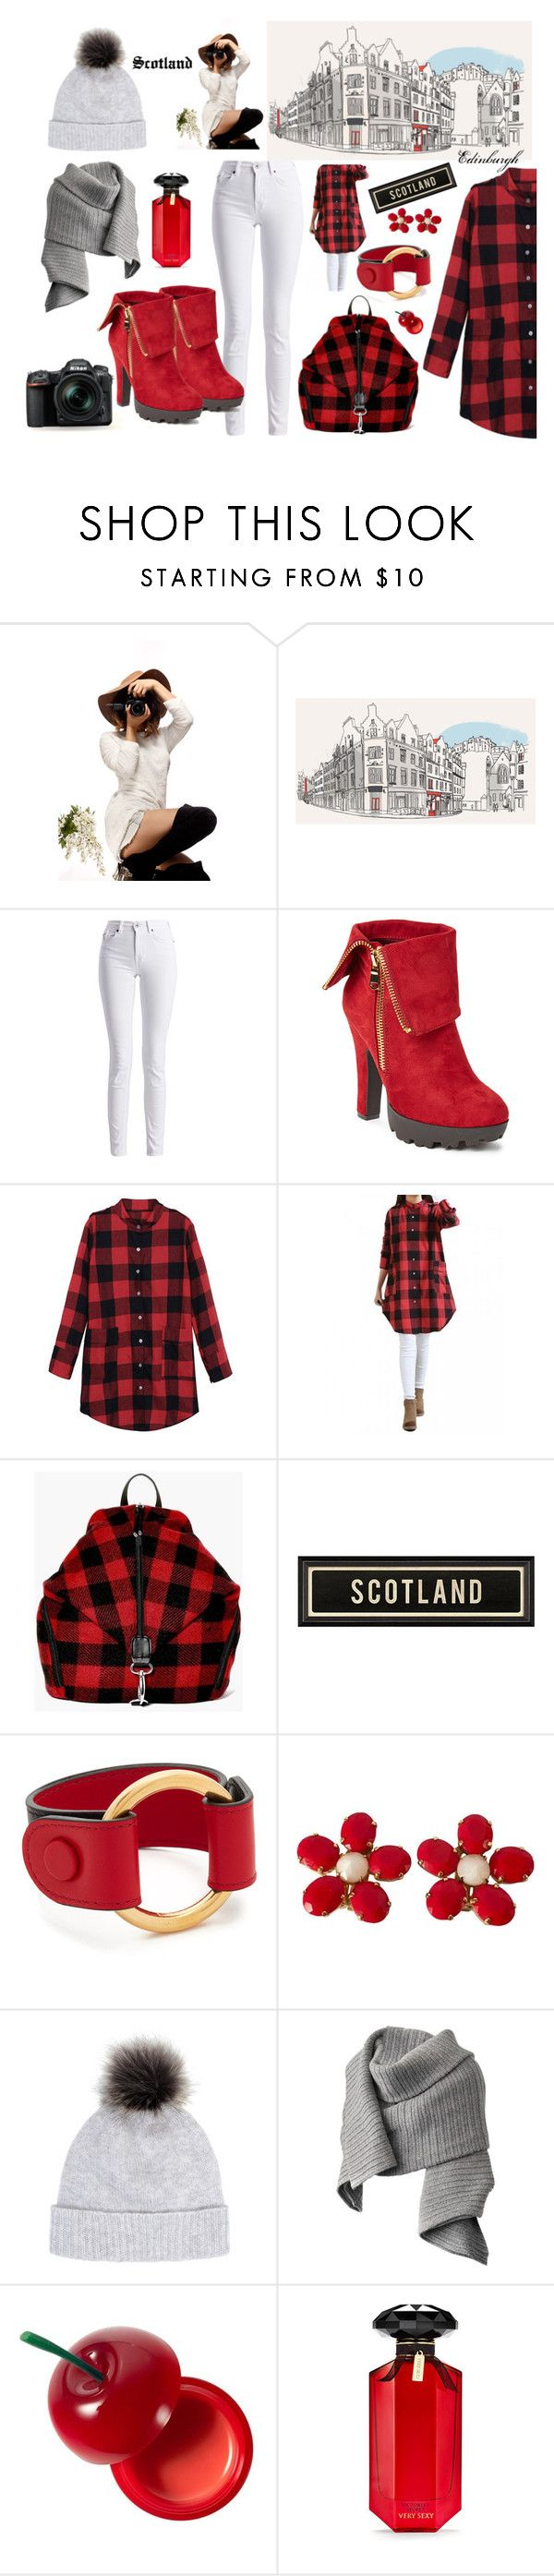 """#outfitsfortravel #fashion #winter #travel #Scotland #Europe #traveloutfits"" by edin-levic ❤ liked on Polyvore featuring Barbour International, Wild Diva, Boohoo, Marni, Schreiner, Helen Moore, Acne Studios, TONYMOLY, Victoria's Secret and Nikon"